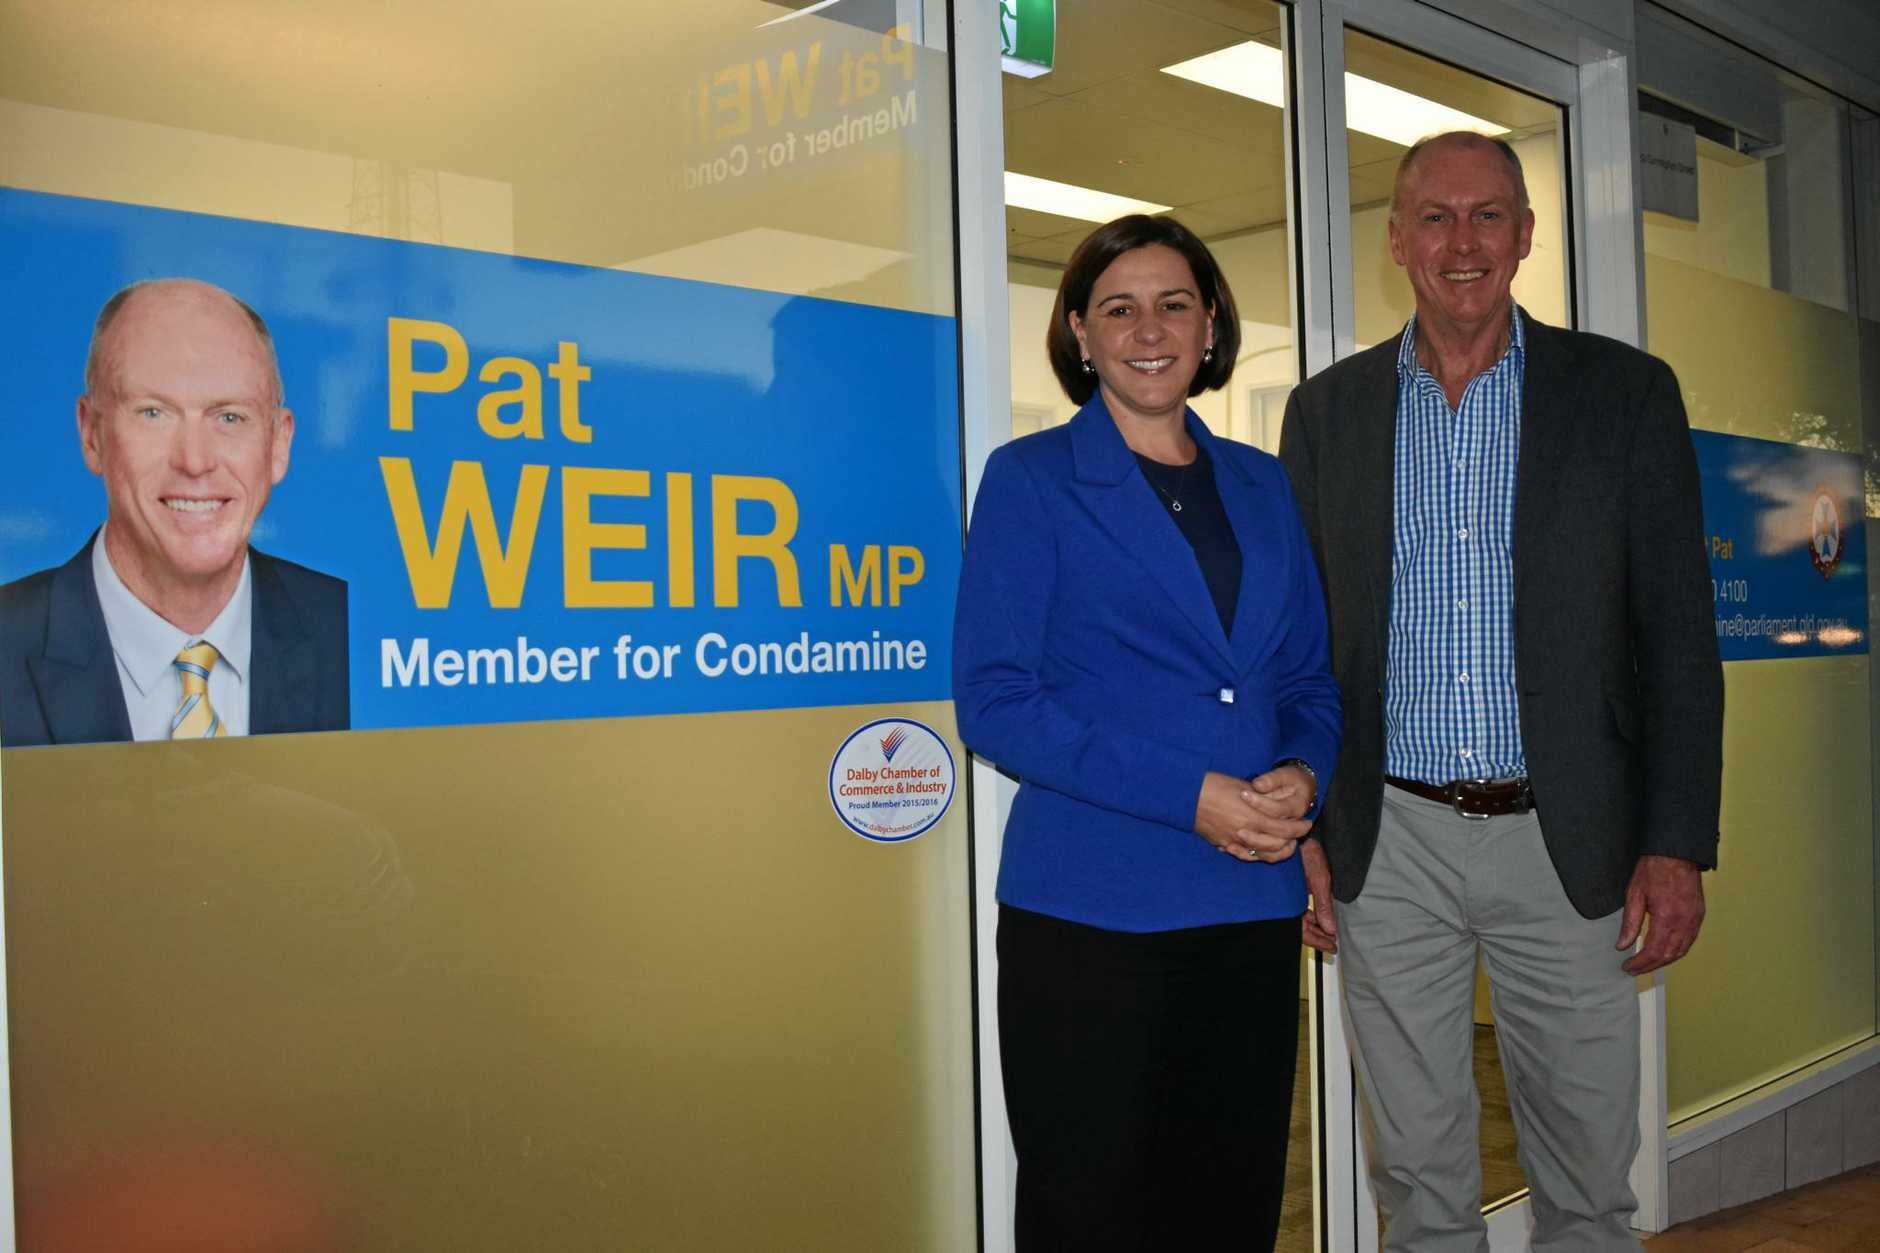 MEET AND GREET: Deputy Leader of the LNP and Member for Nanango, Deb Frecklington, with Member for Condamine, Pat Weir, in Dalby.